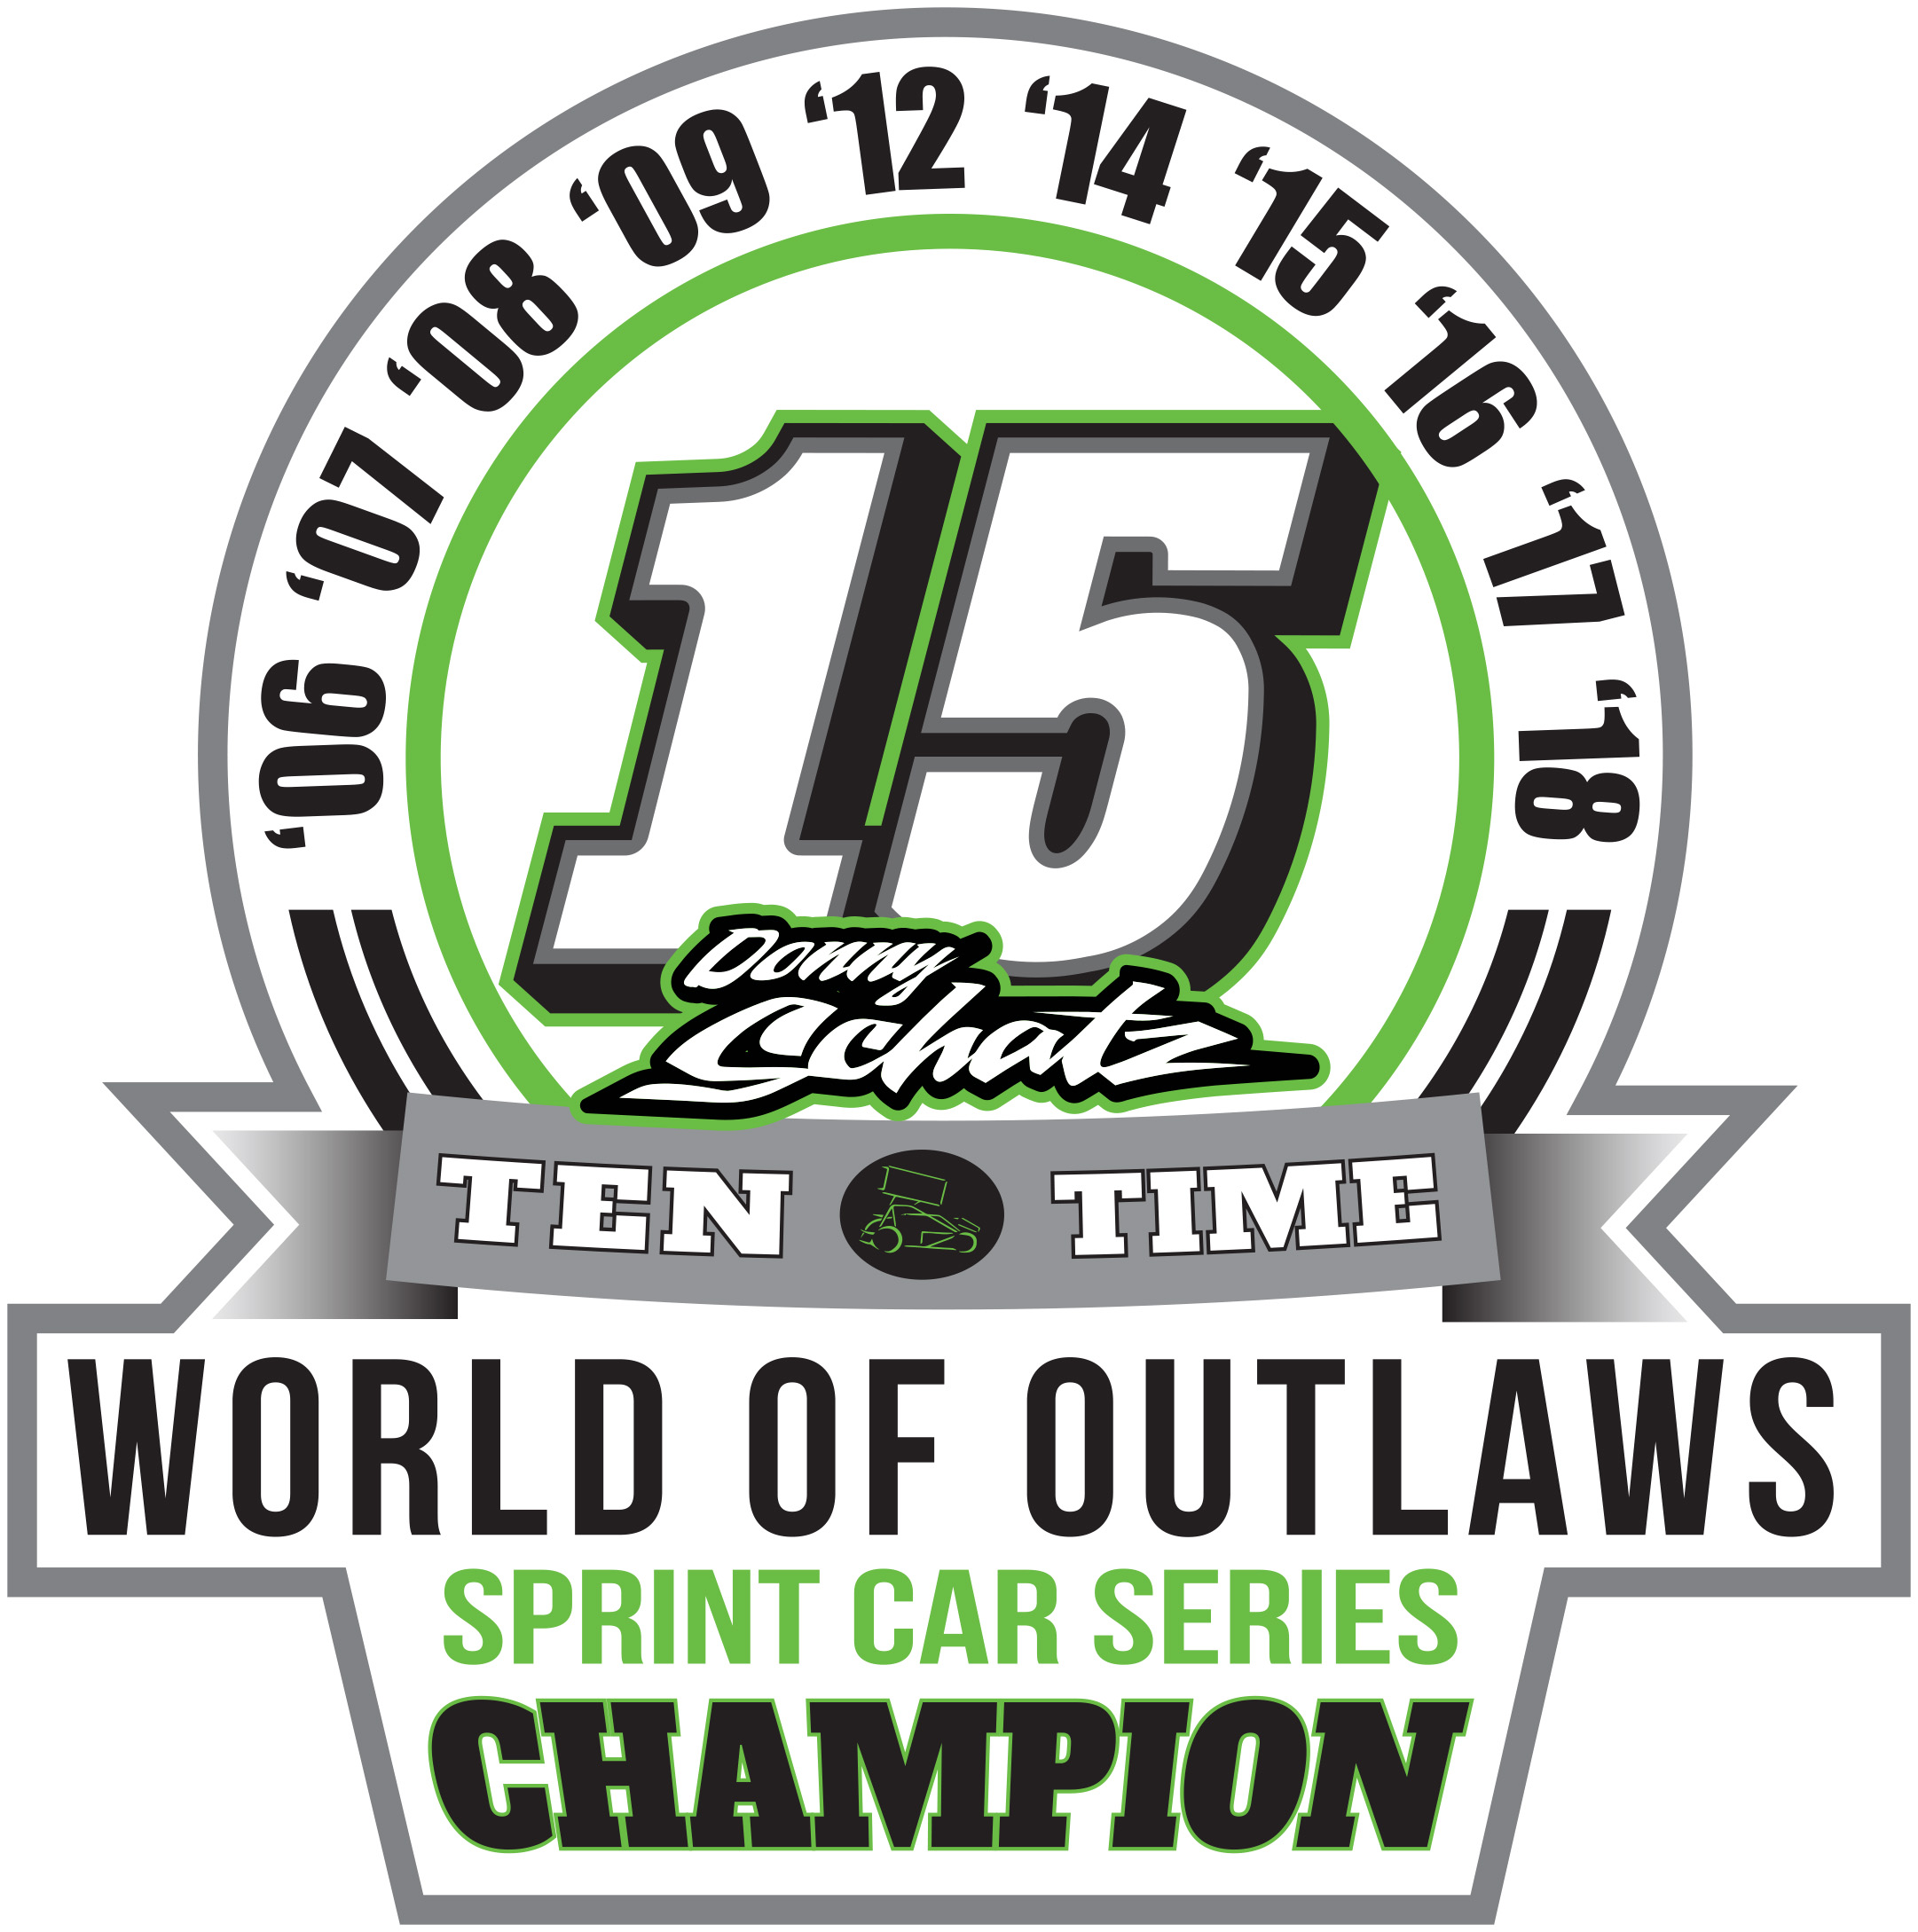 Donny Schatz earns tenth World of Outlaws championship